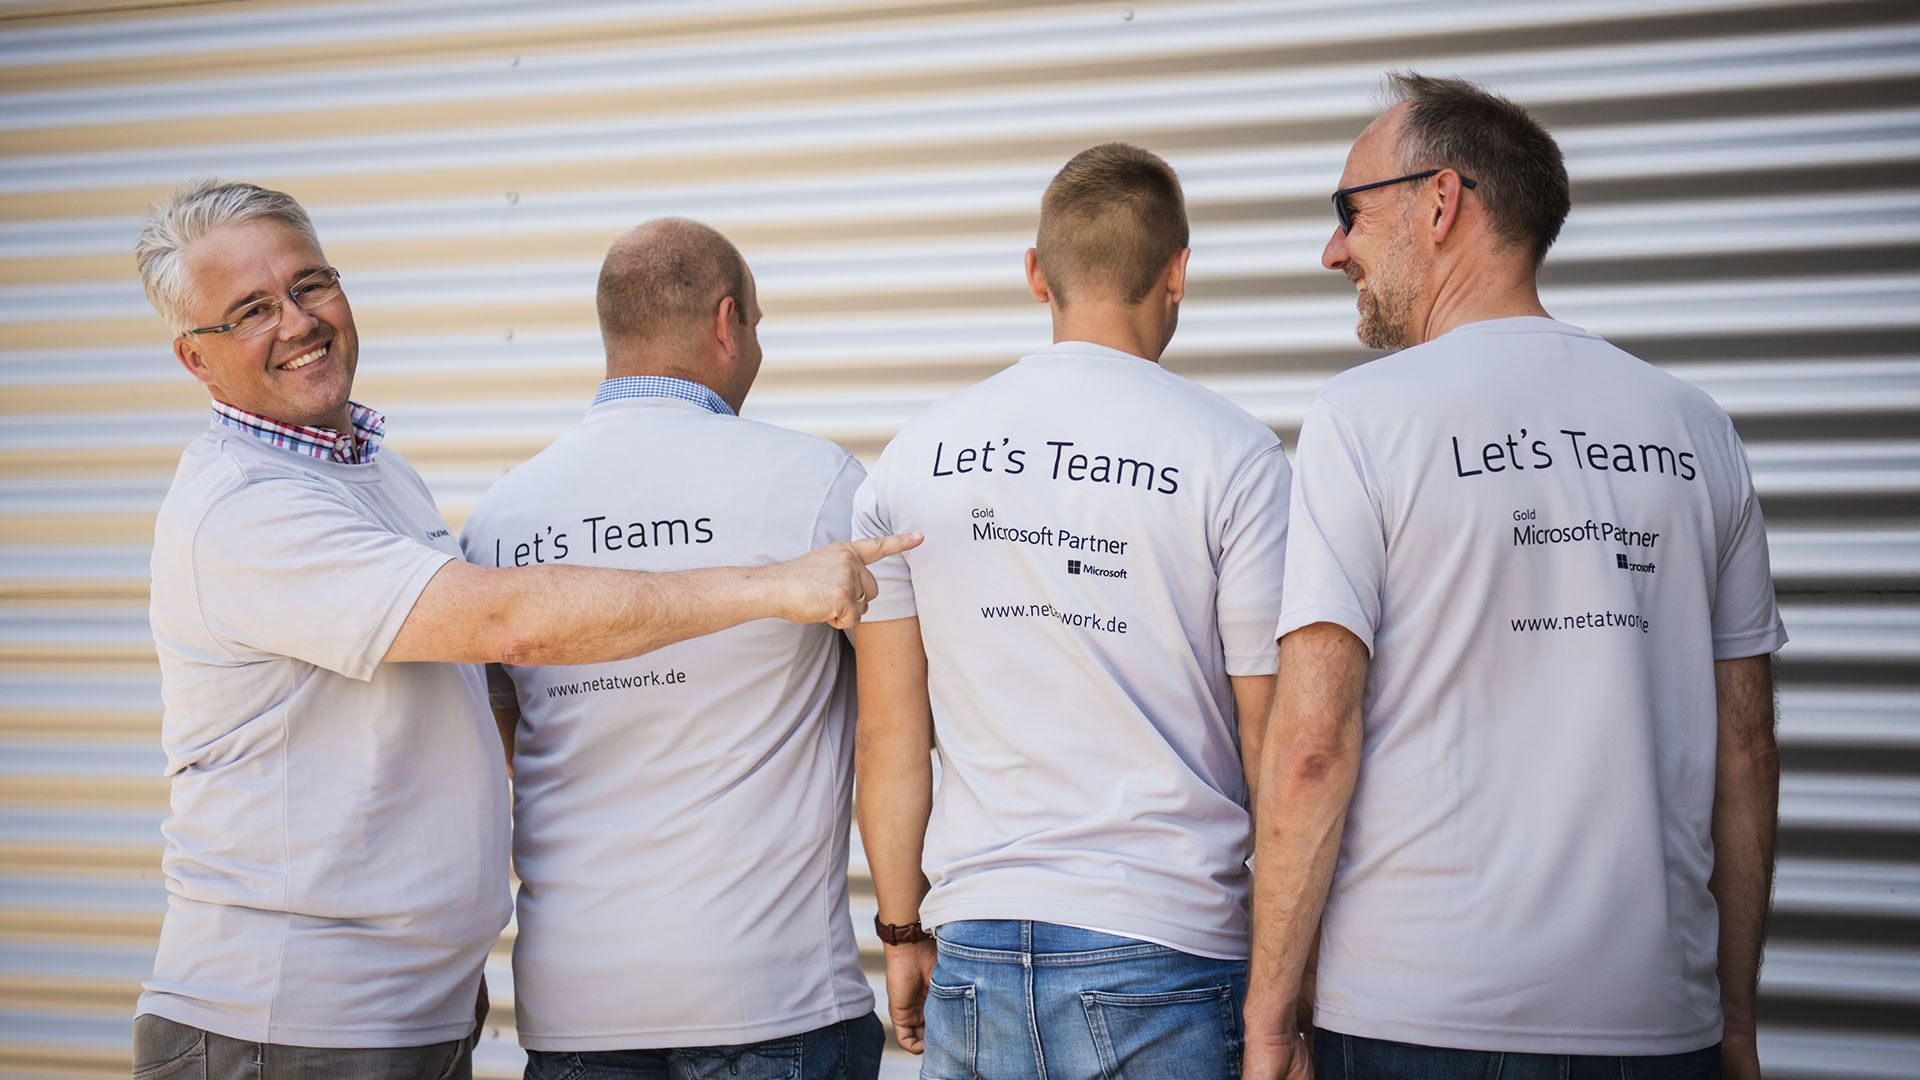 Frank Carius und Uwe Ulbrich in Let's Teams-Shirts